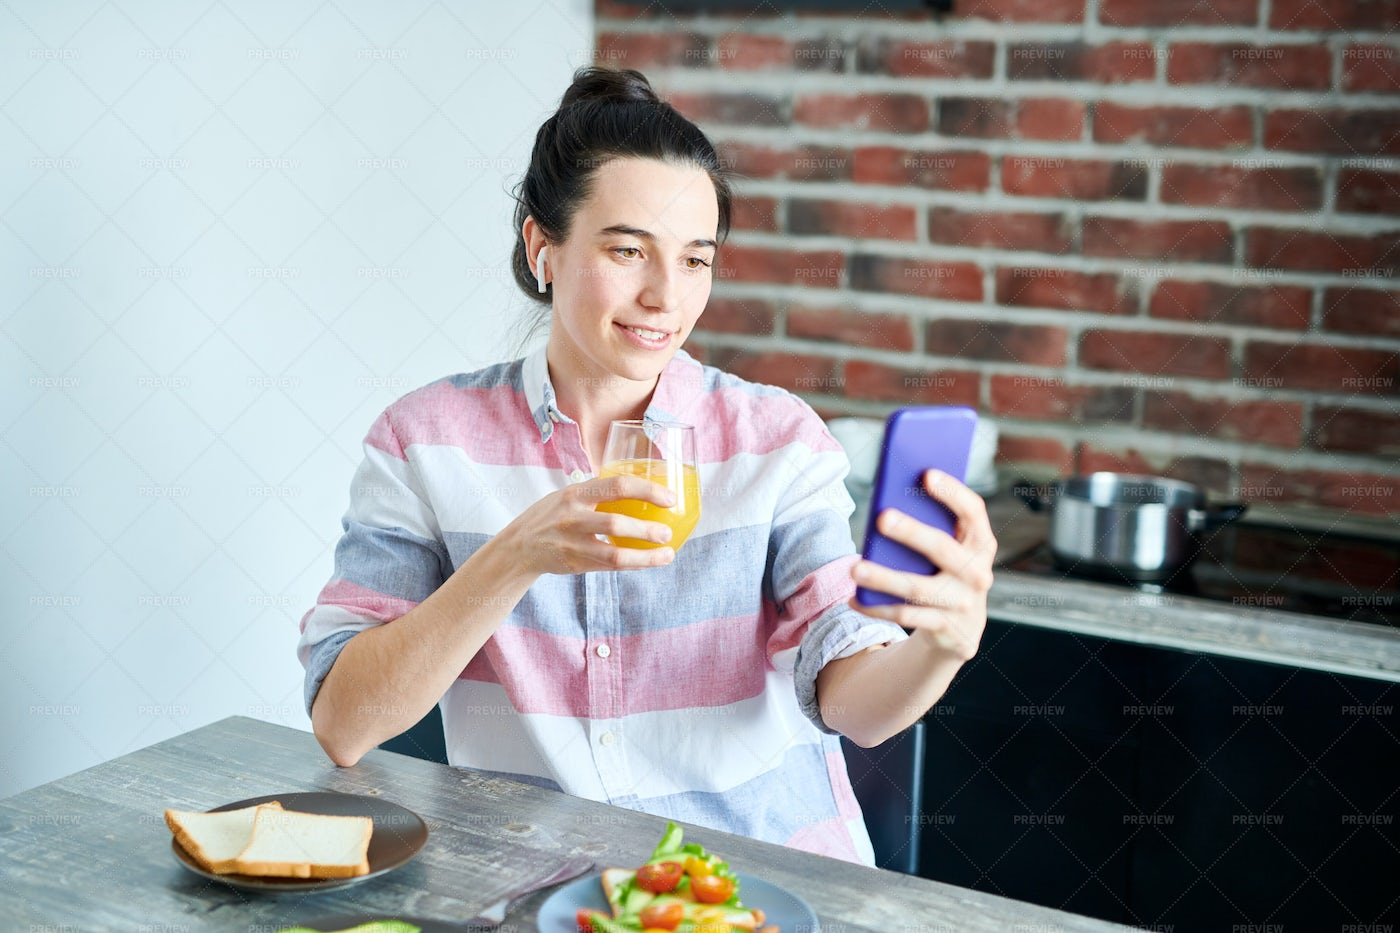 Using Video Chat At Breakfast: Stock Photos